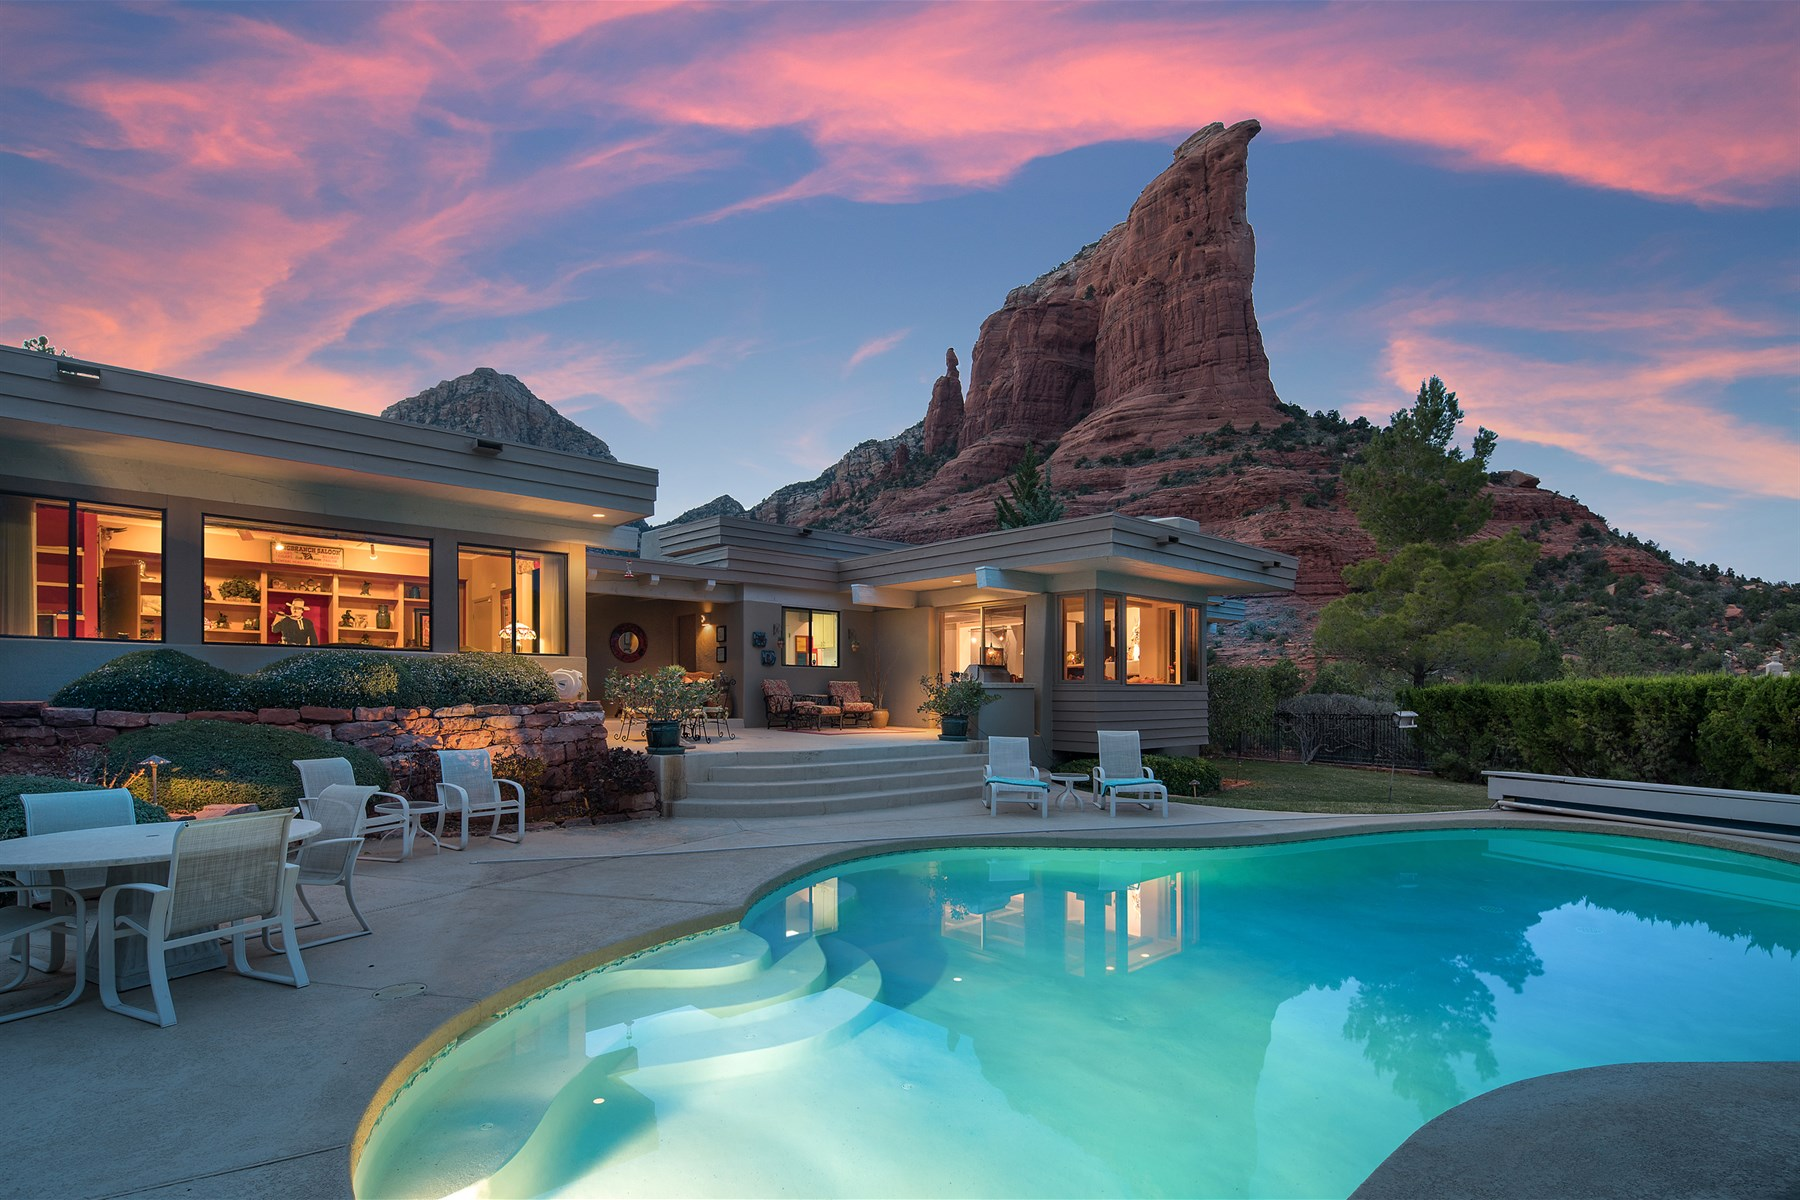 Single Family Home for Sale at Single-level Frank Lloyd Wright architecturally inspired home 250 Shadow Rock Dr Sedona, Arizona, 86336 United States